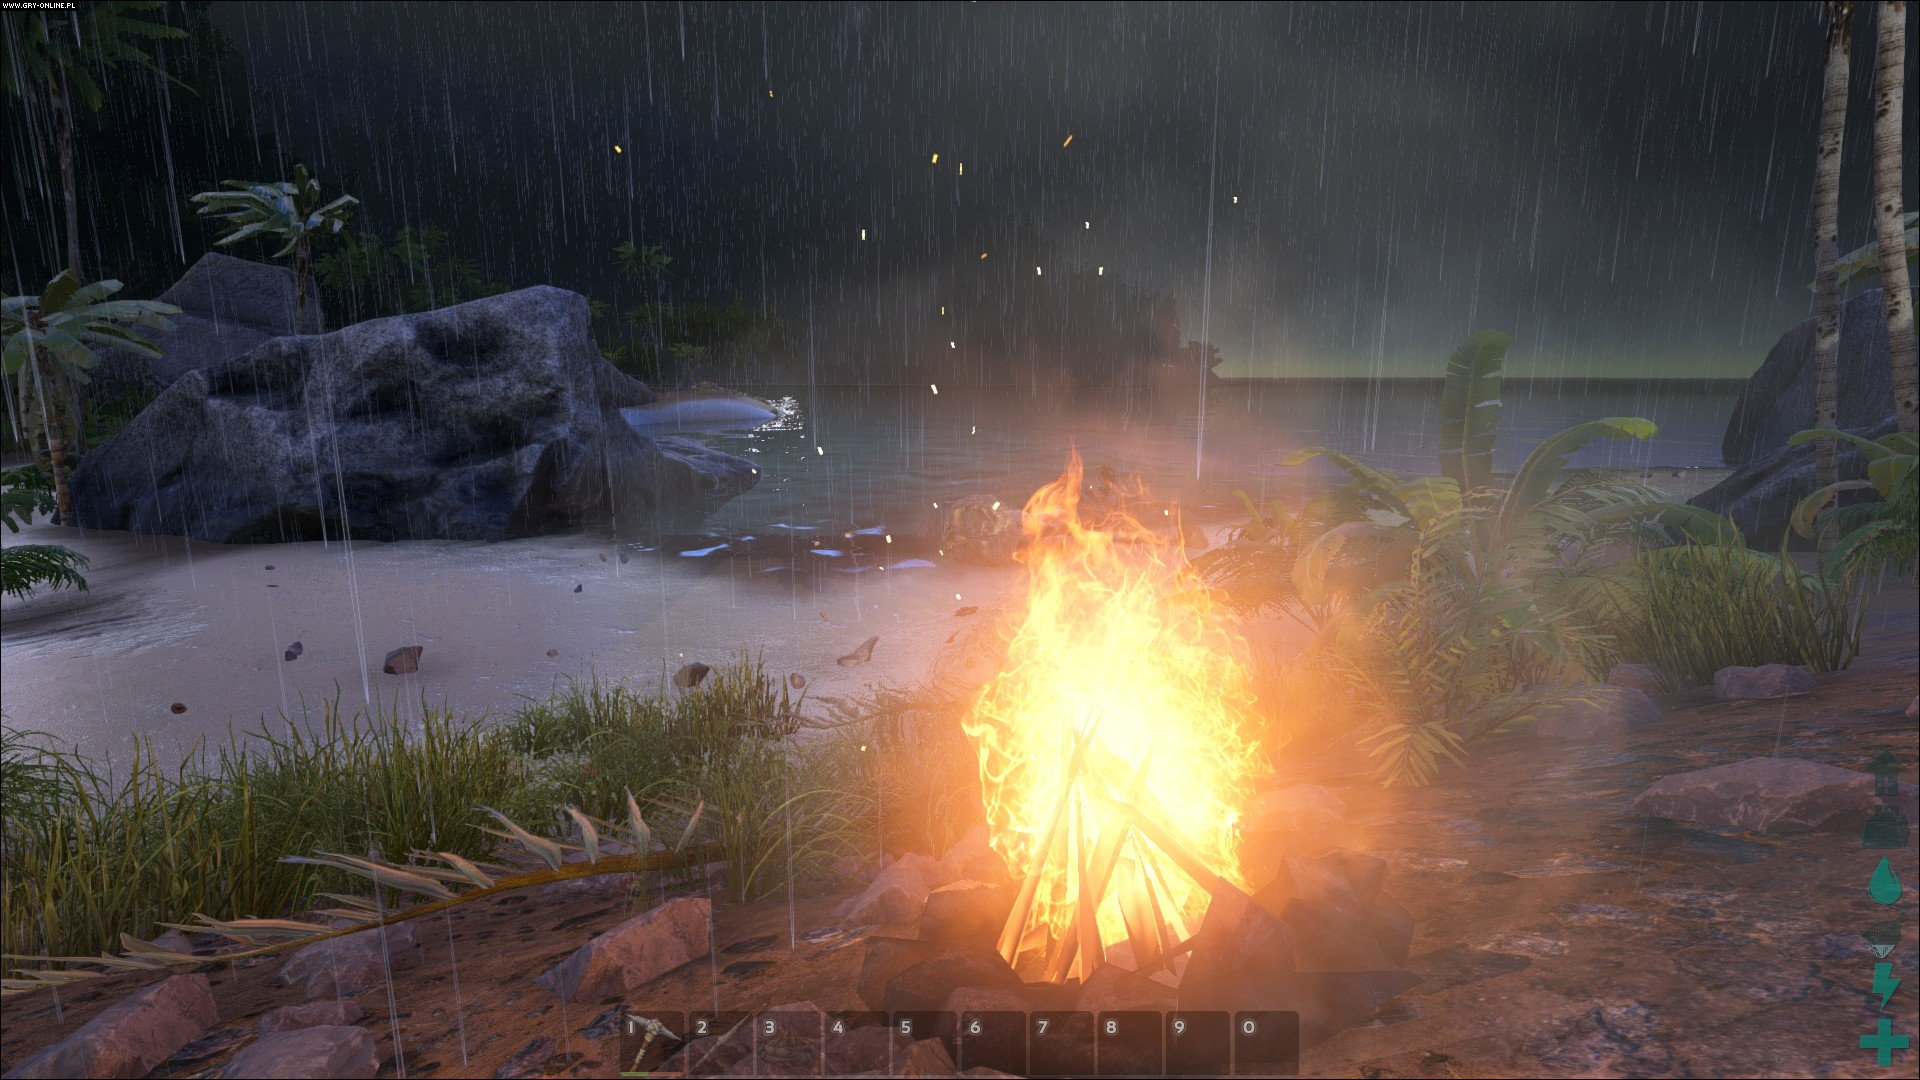 ARK: Survival Evolved PC, PS4, XONE, Switch Gry Screen 117/148, Studio Wildcard